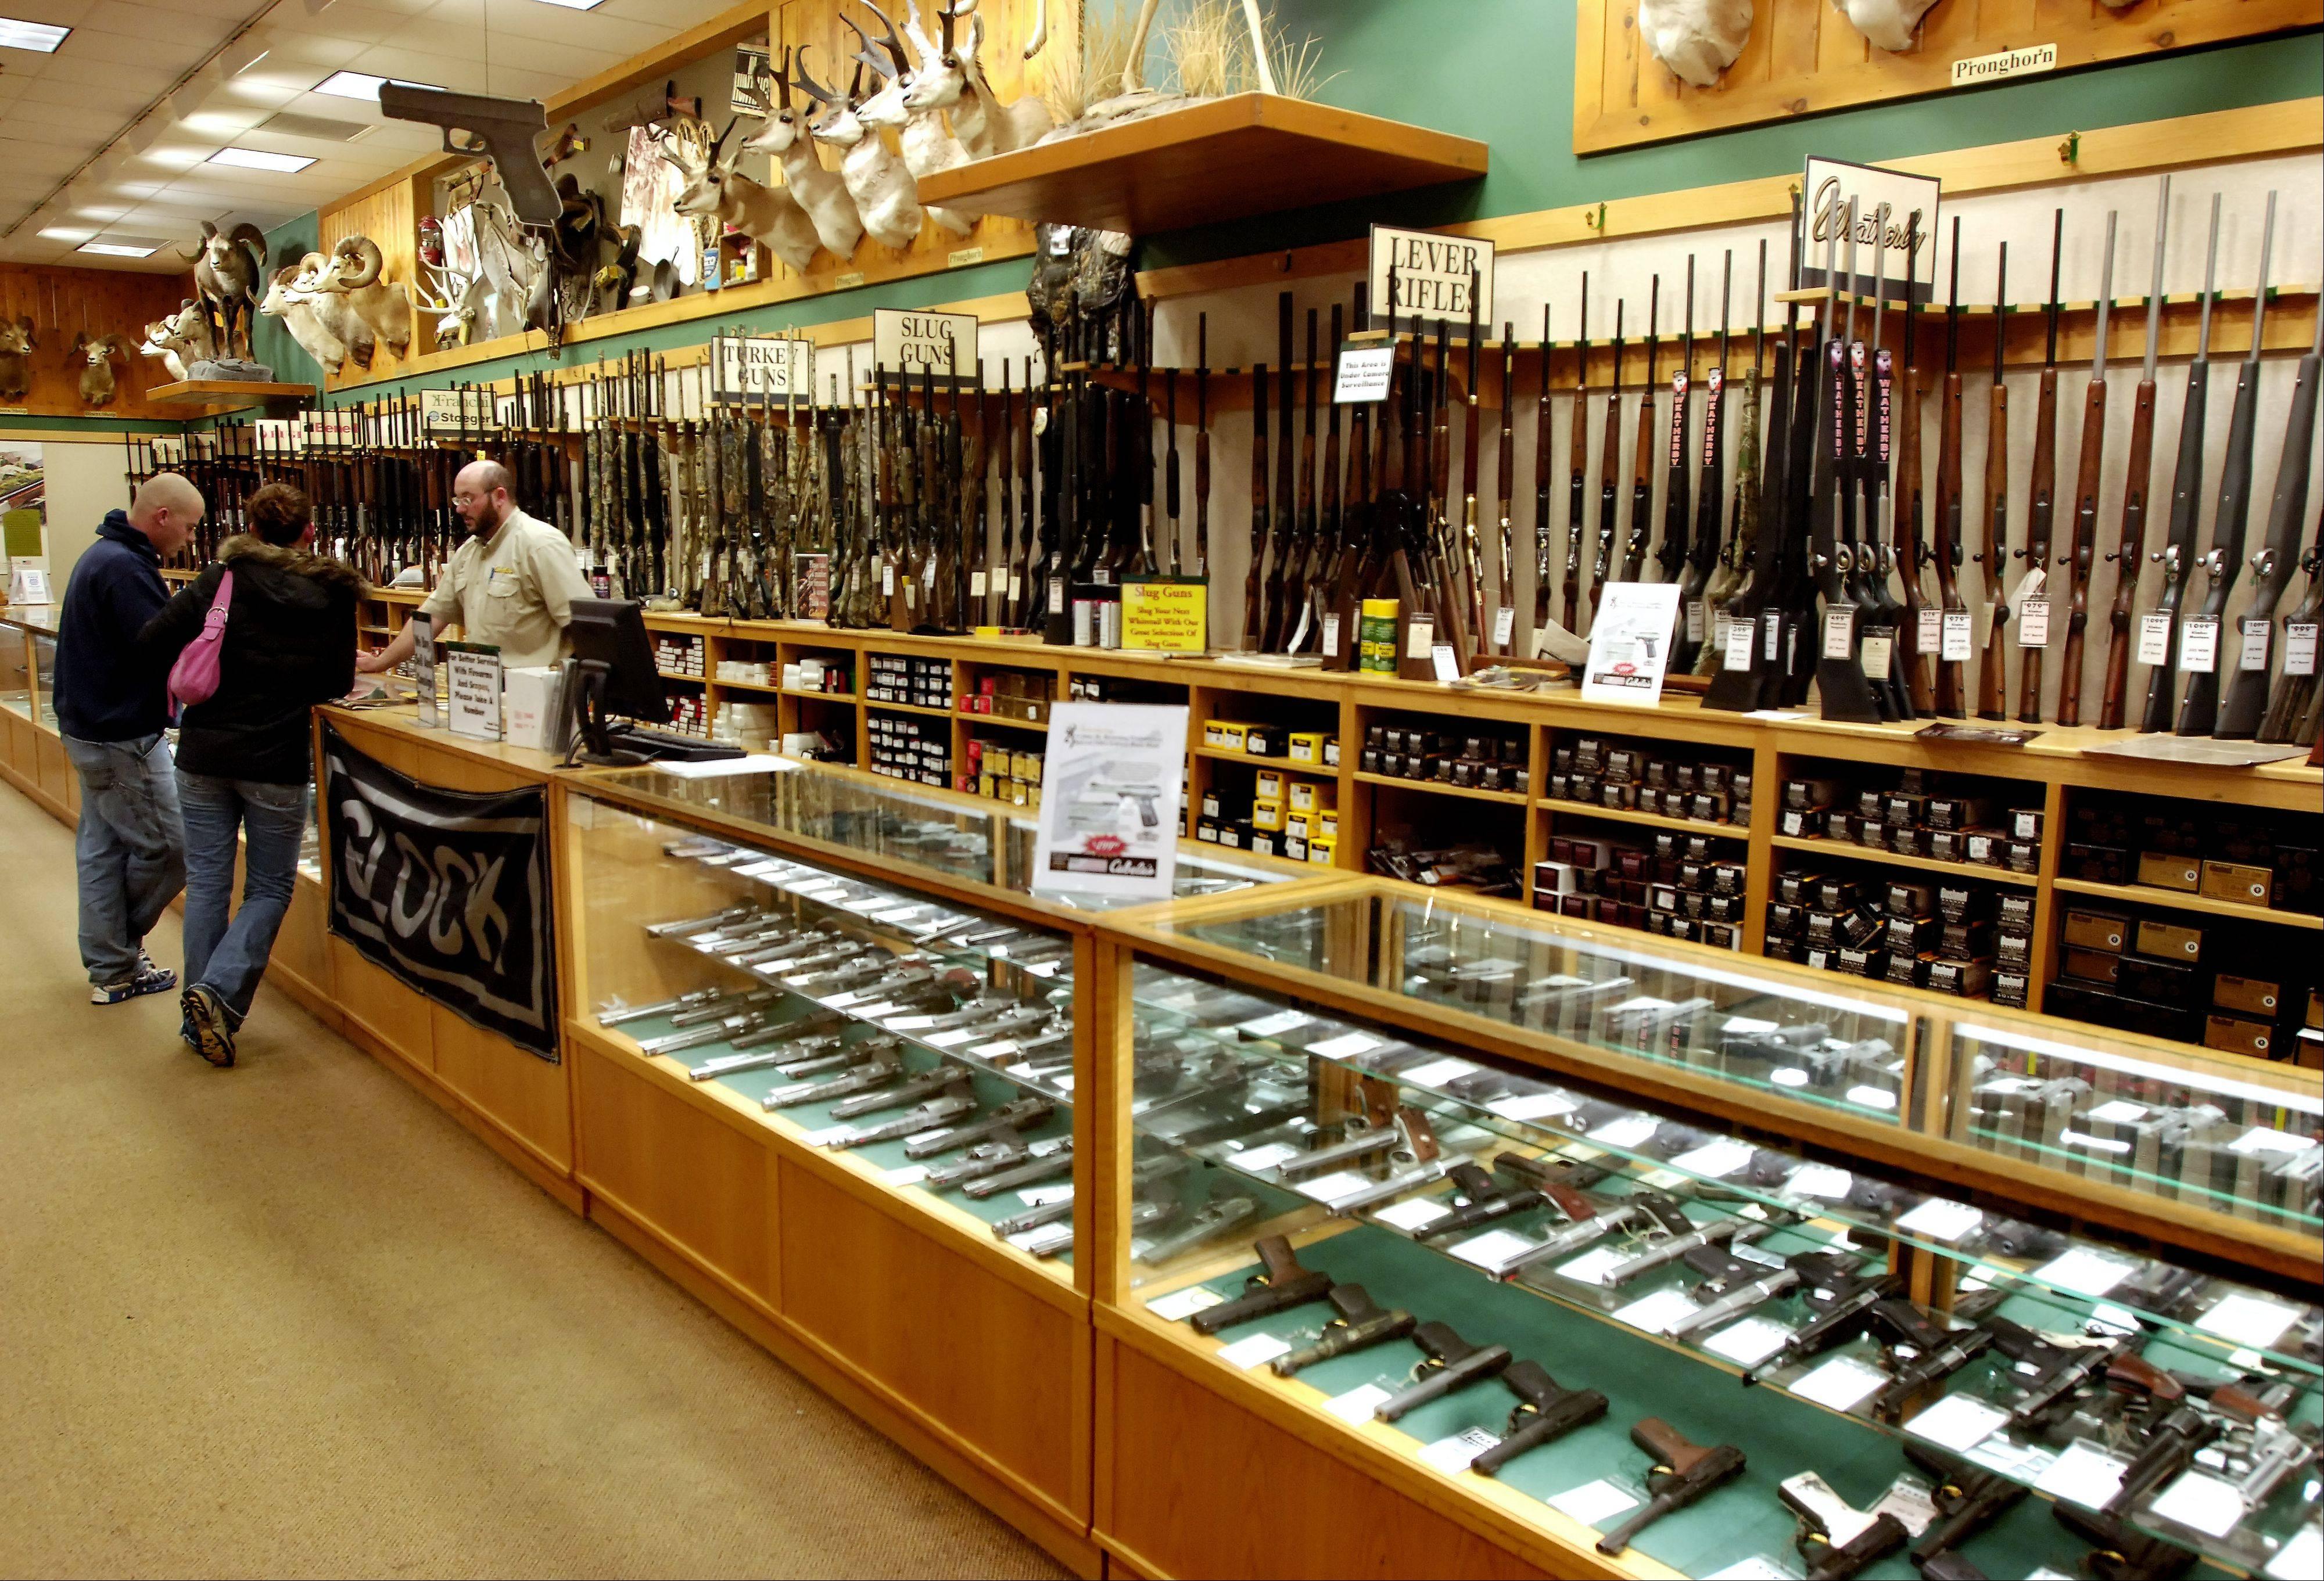 Illinois gun sellers say the rush to buy firearms since last Friday�s school shootings in Connecticut appears to be about self-defense � though many buyers already own guns and appear to be adding to their collections amid talk of tougher restrictions on gun ownership.